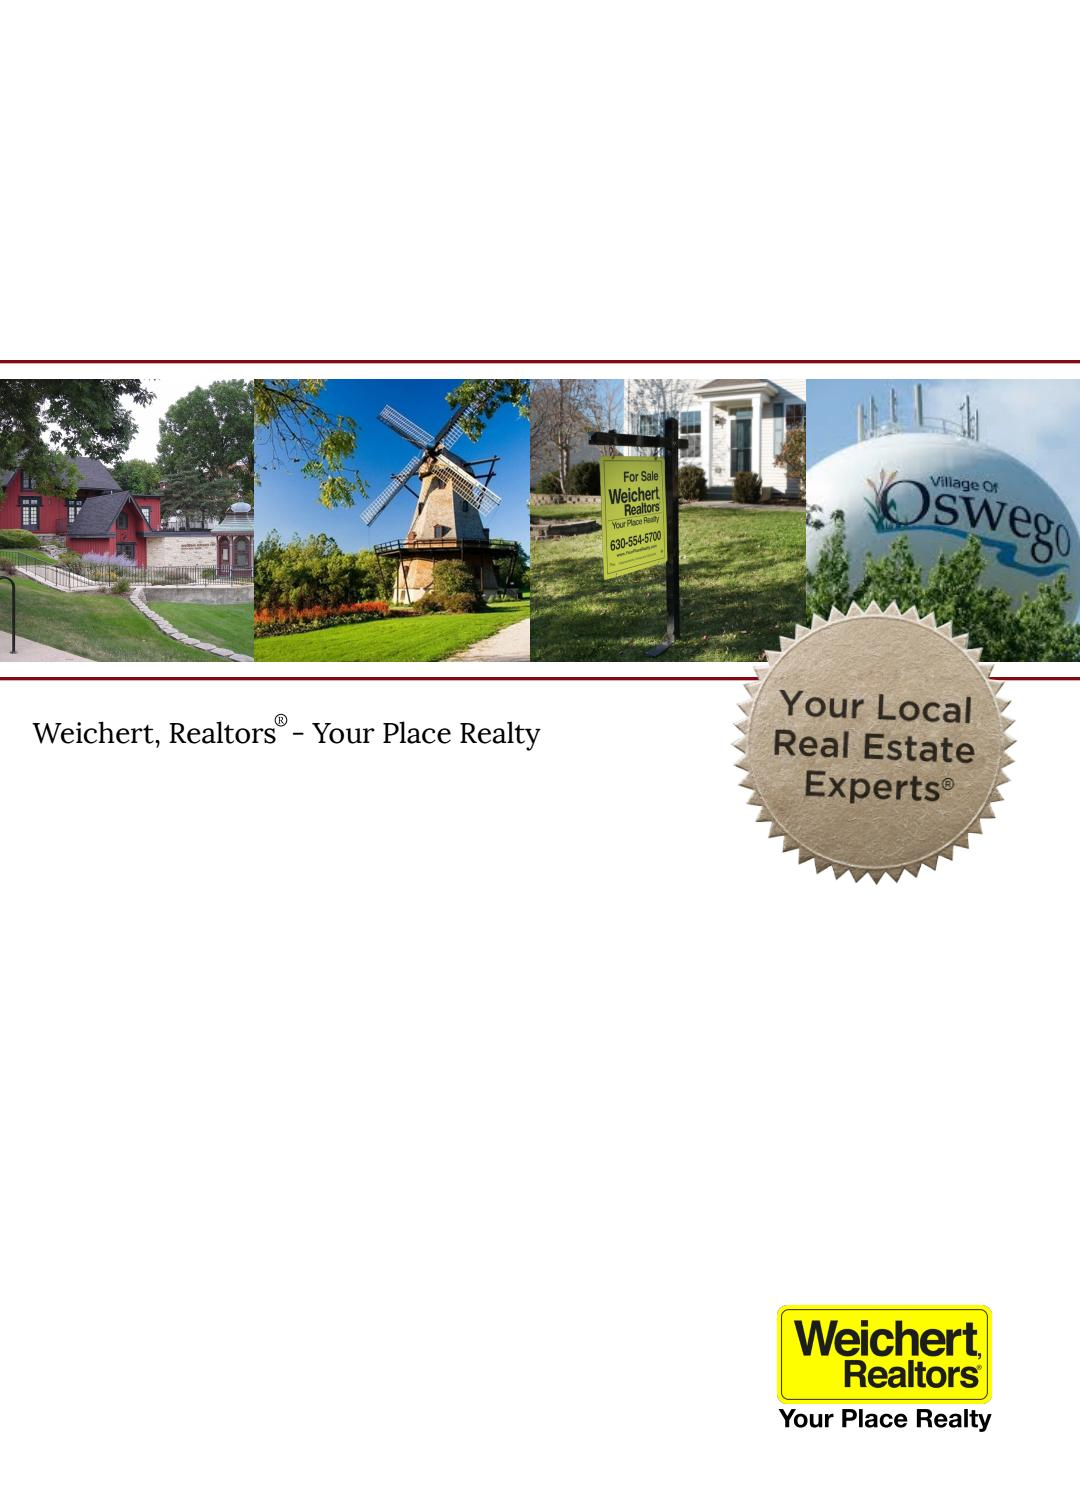 Doors Listing Presentation by WEICHERT, REALTORS - Your Place Realty